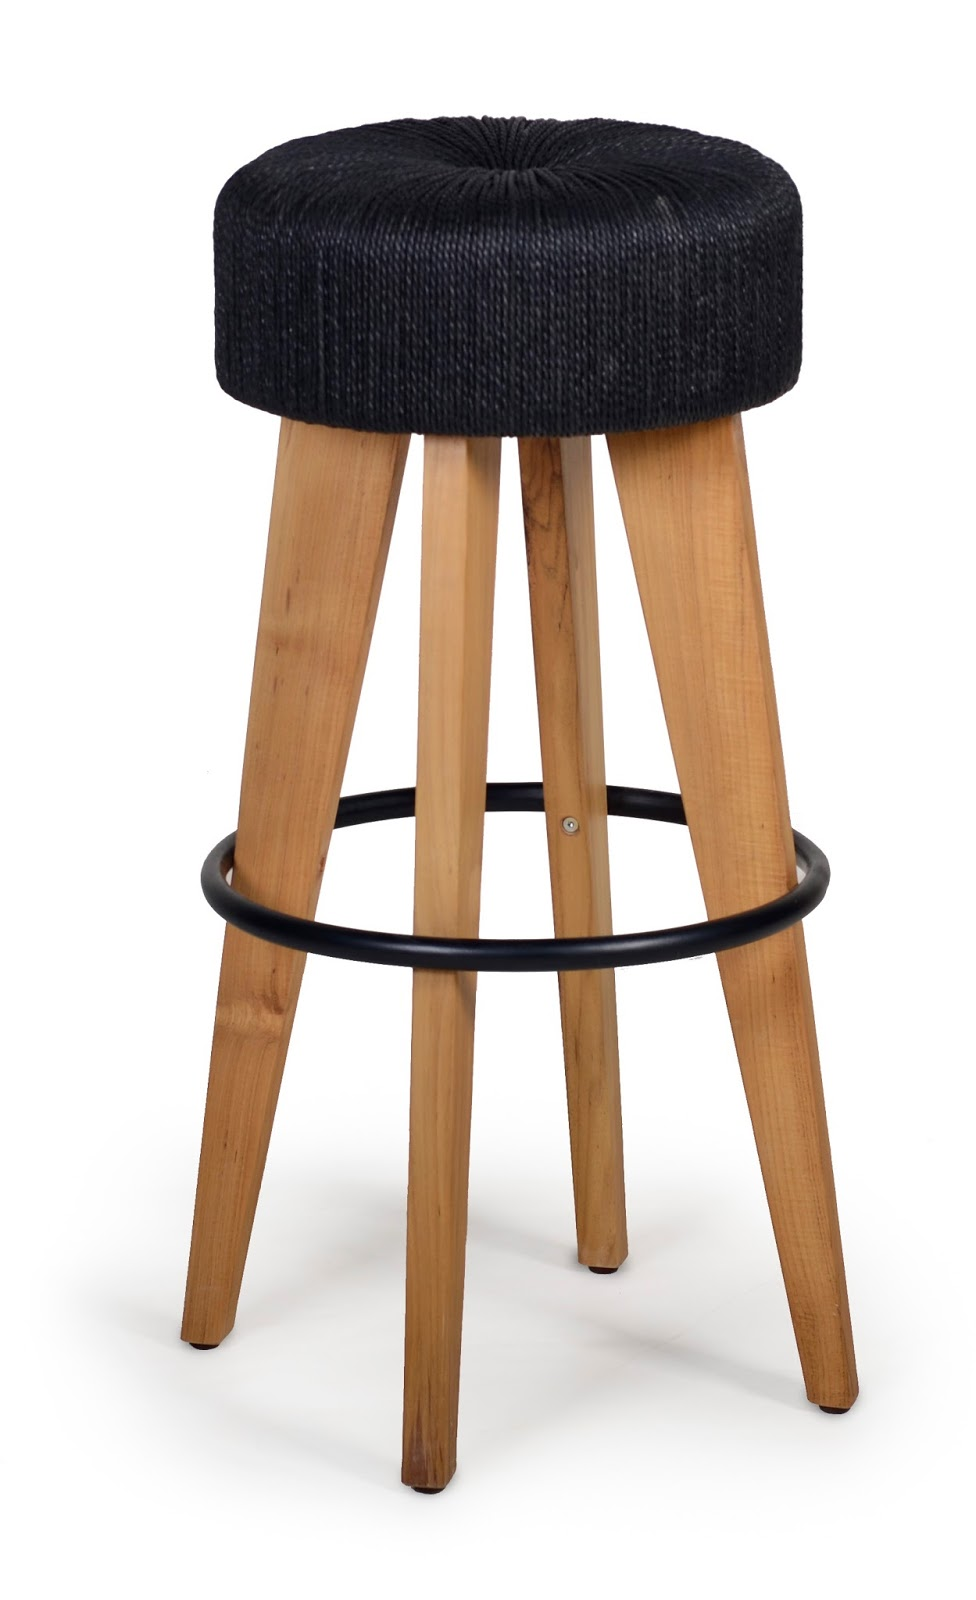 Astounding Trendsetter Interiors The New Pican Kitchen Stool Perfect Machost Co Dining Chair Design Ideas Machostcouk